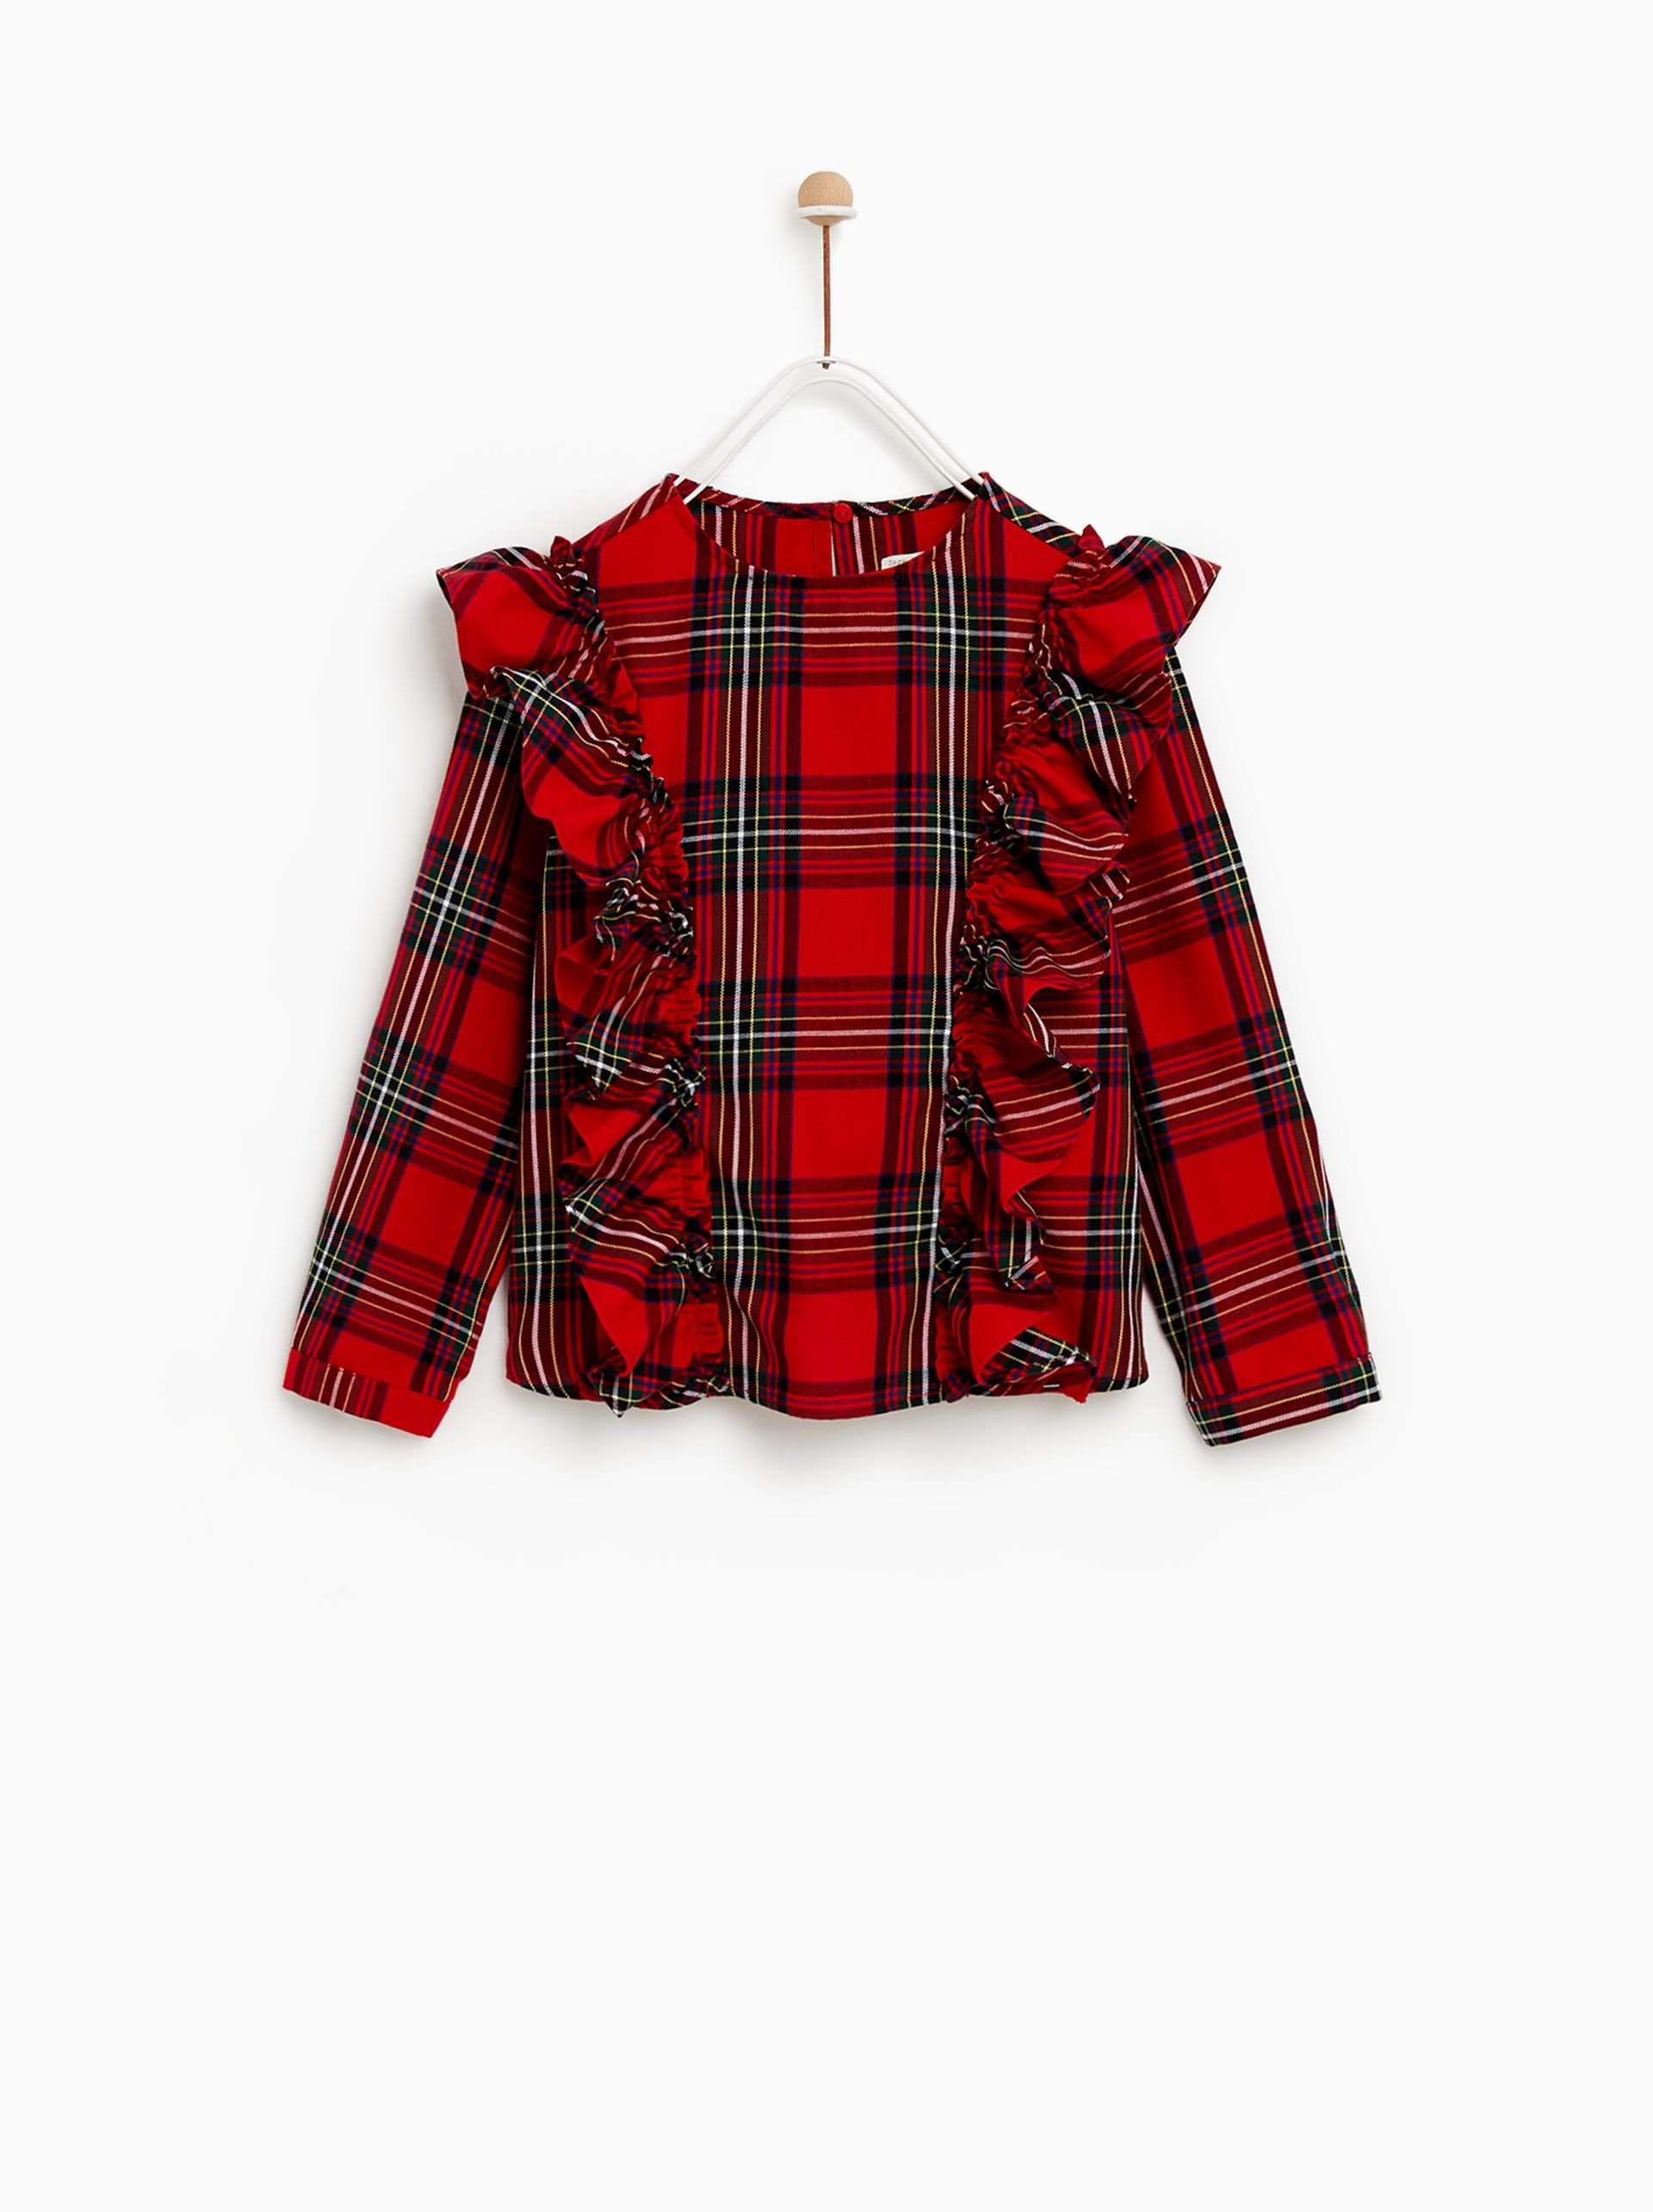 Flannel shirt for girls  Image  of PLAID SHIRT from Zara  Holiday Inspiration  Pinterest